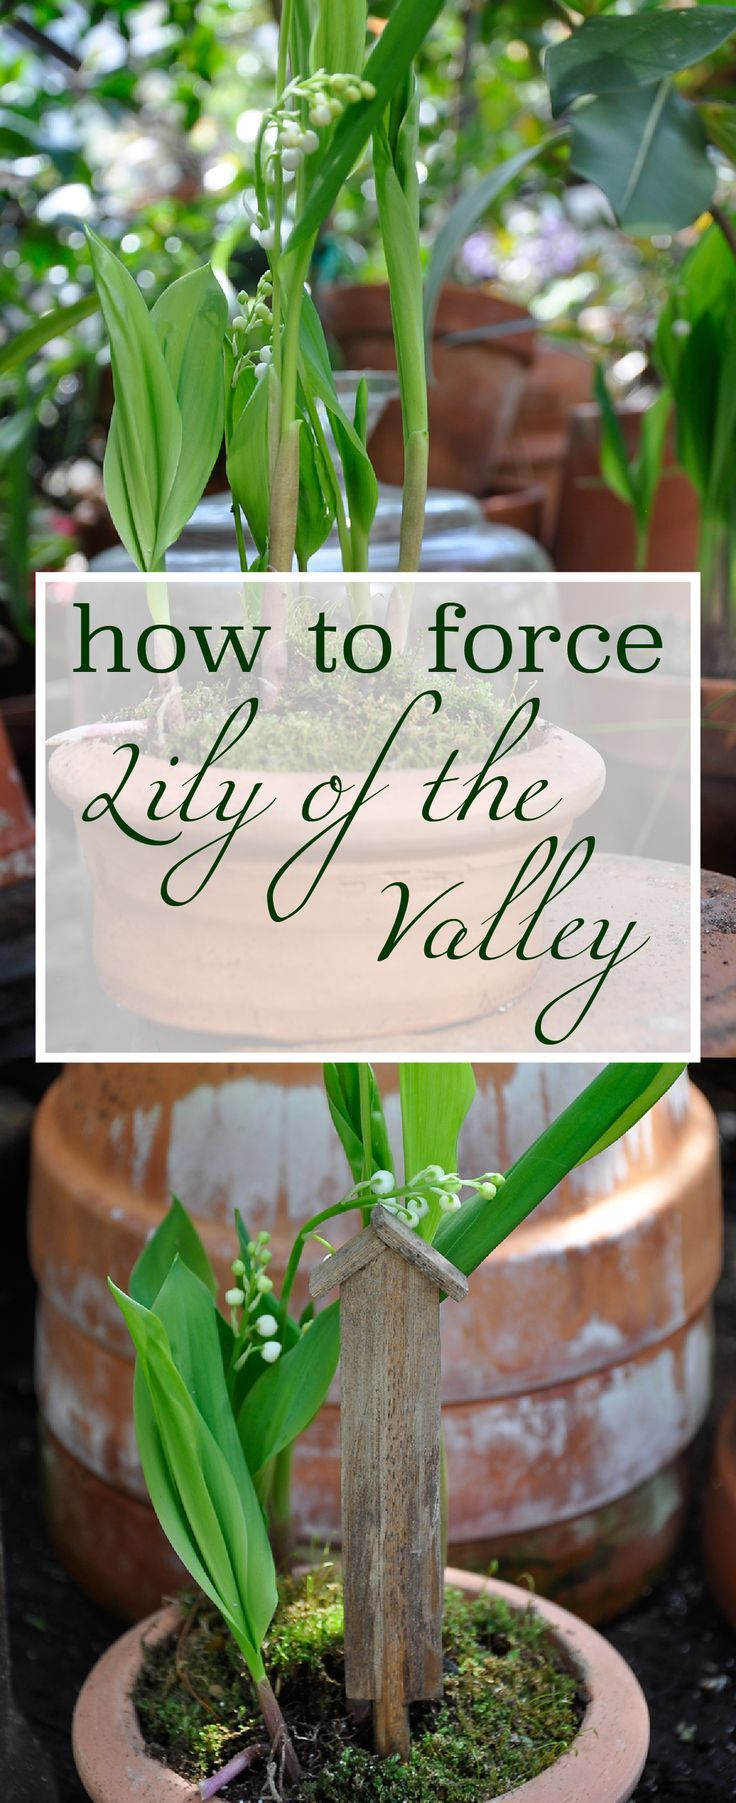 17 best ideas about lily of the valley on pinterest lily of the valley flower photos lily of. Black Bedroom Furniture Sets. Home Design Ideas